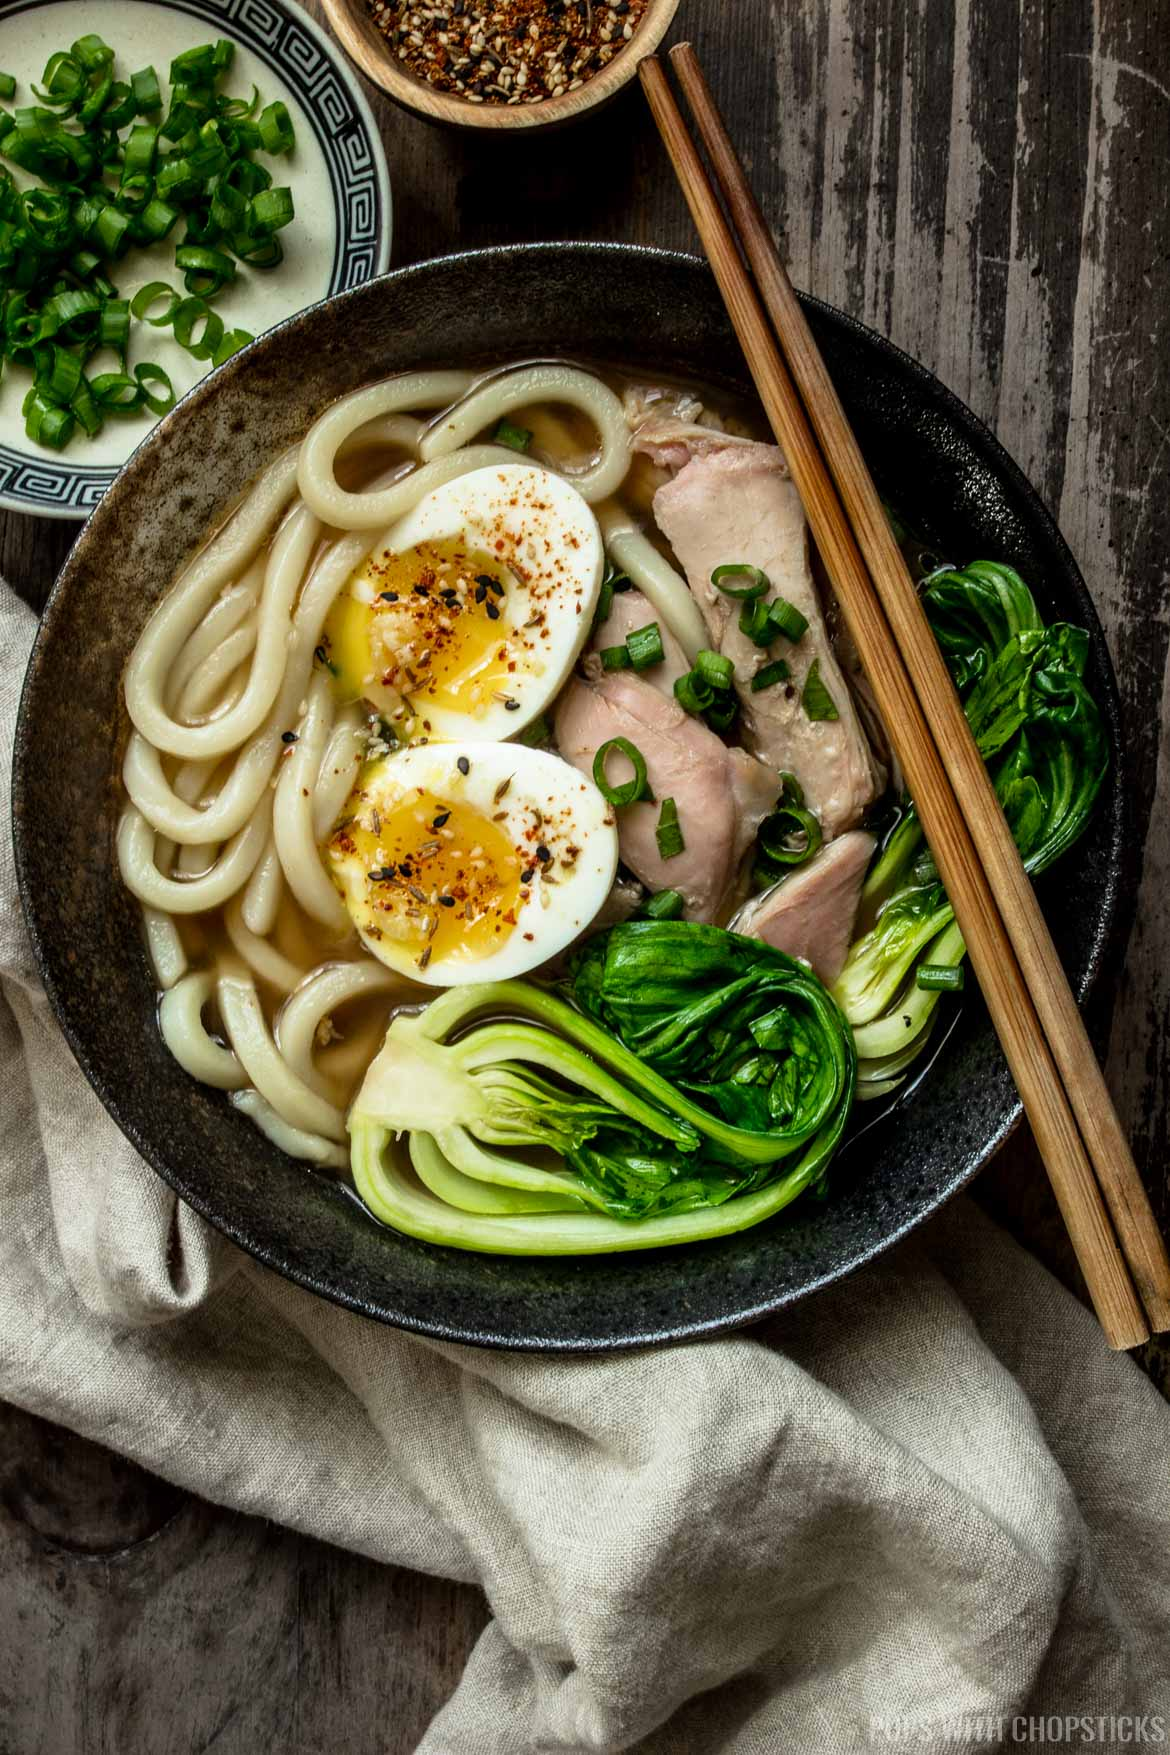 A large bowl of turkey udon noodle soup with soft boil egg, leftover turkey and bok choy on top, with green onions on the side.